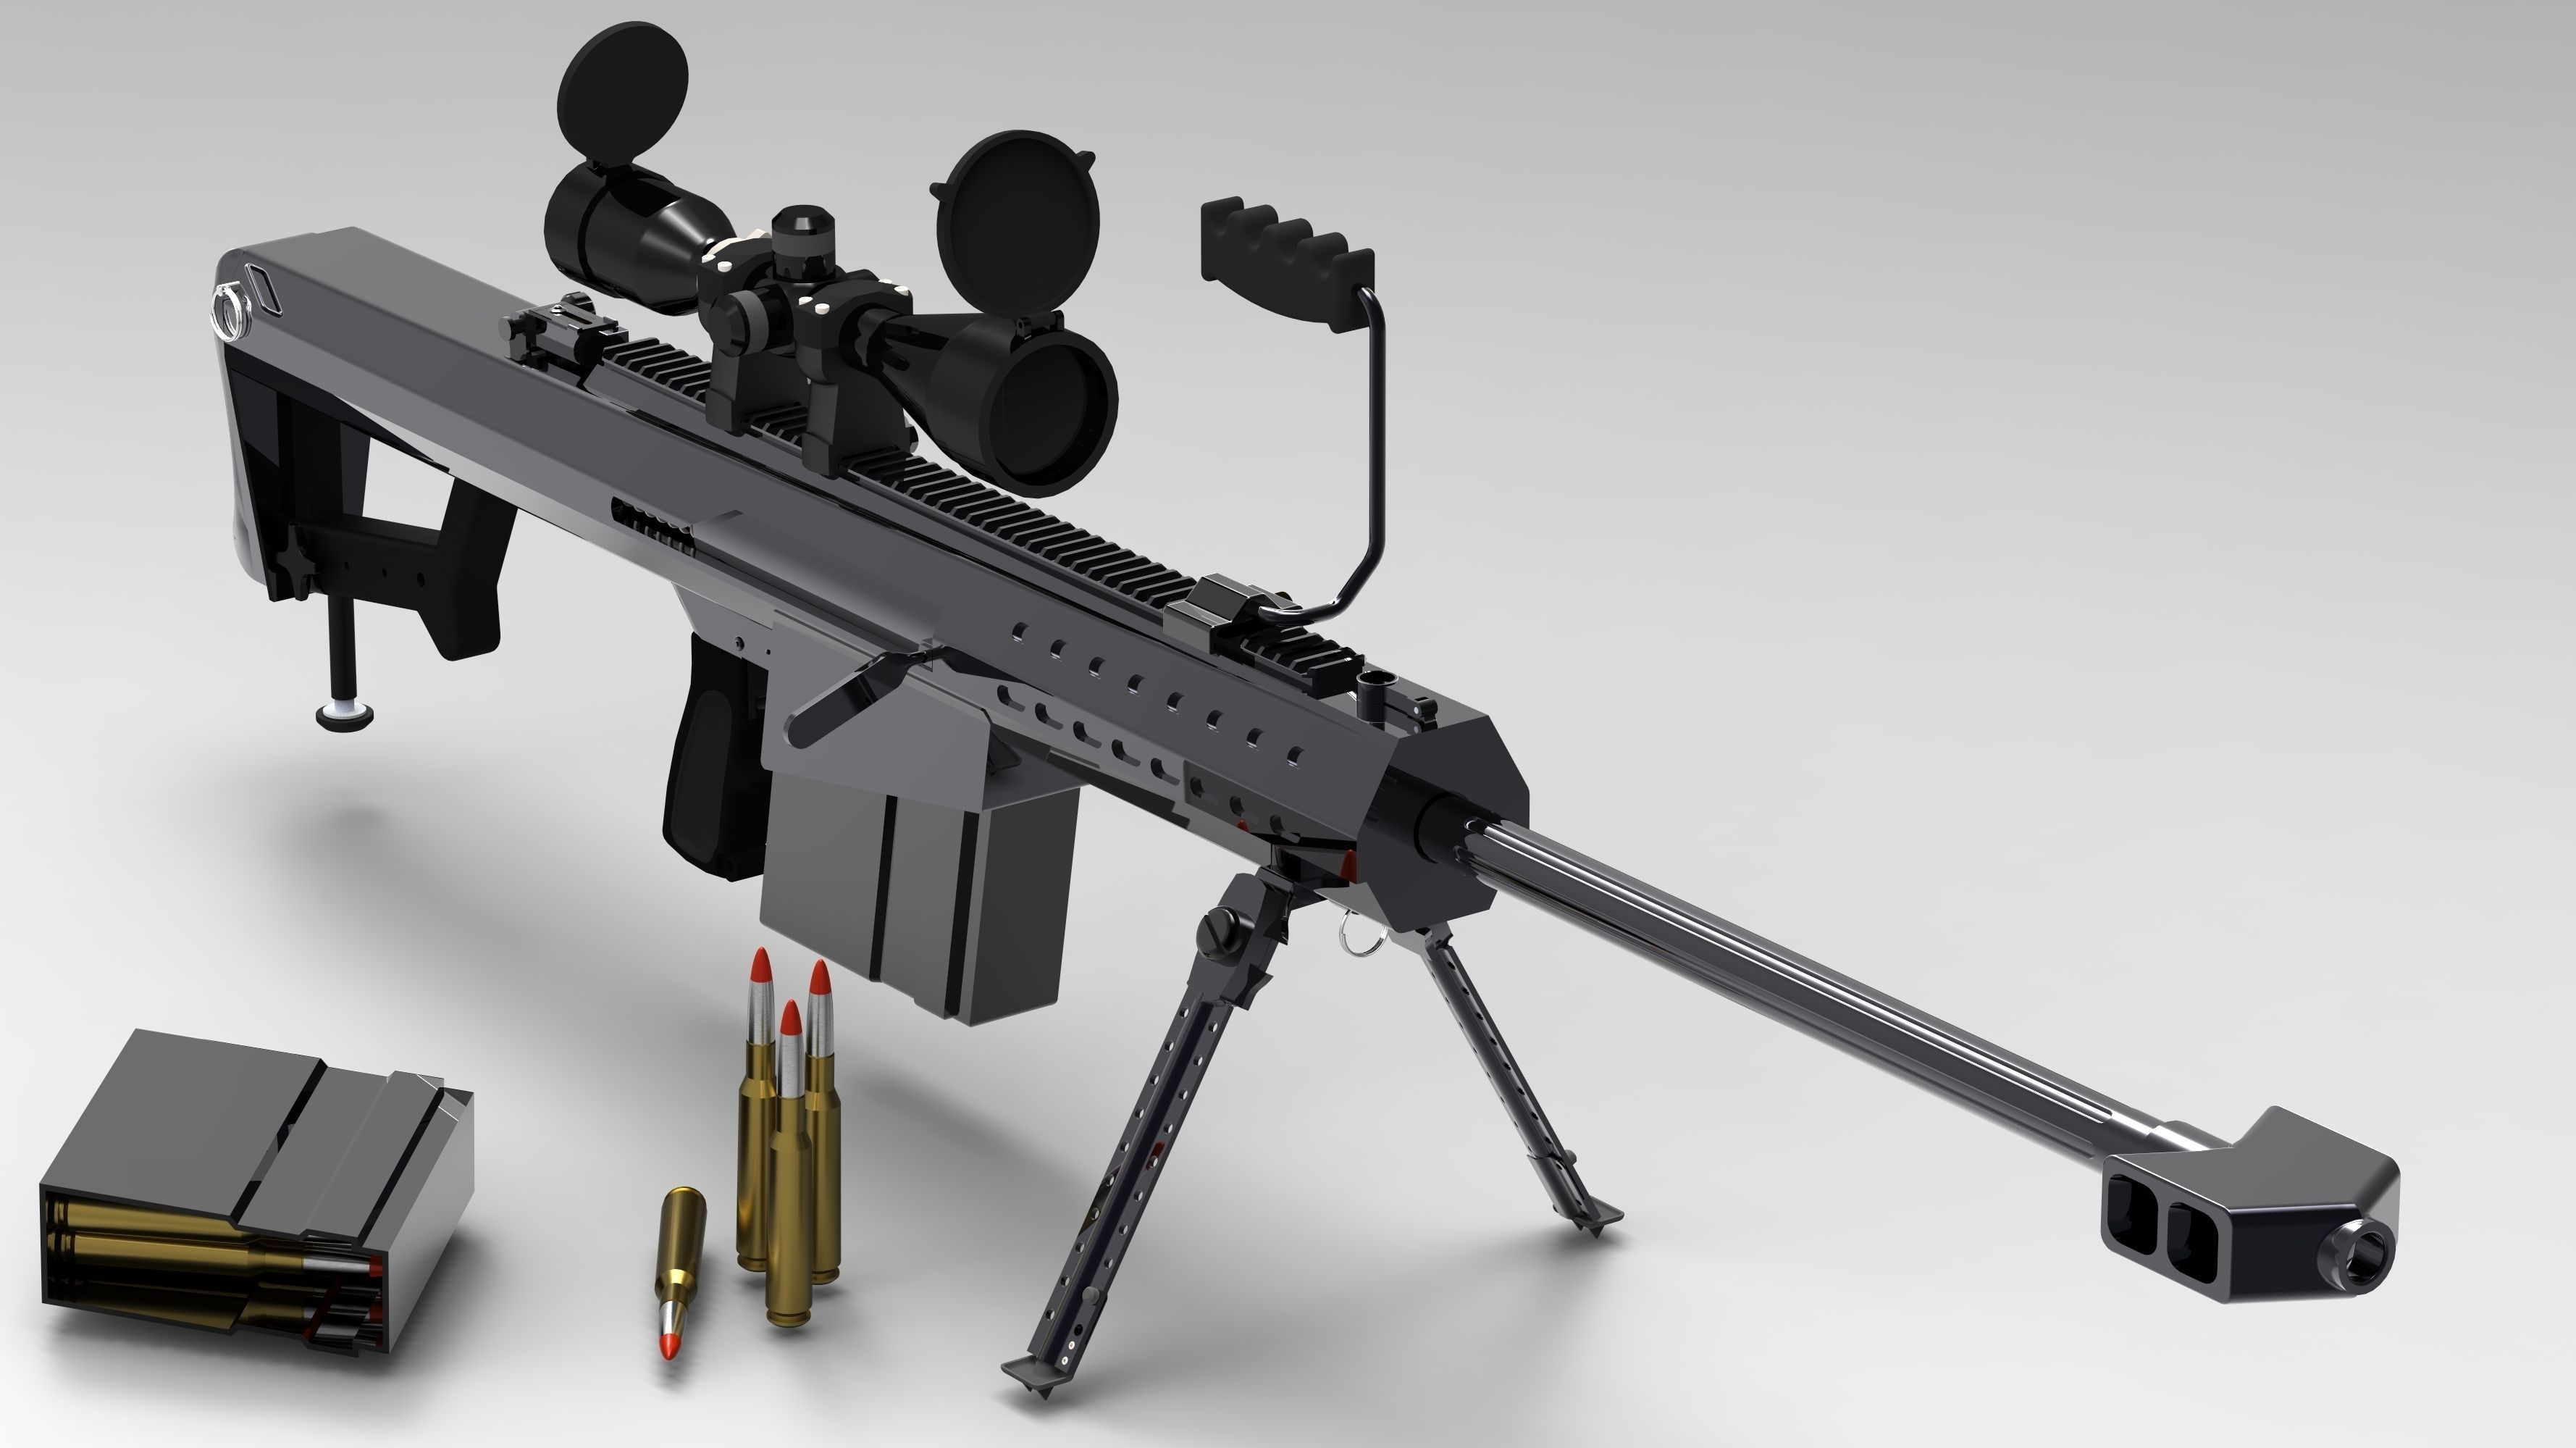 m107 sniper rifle - photo #5